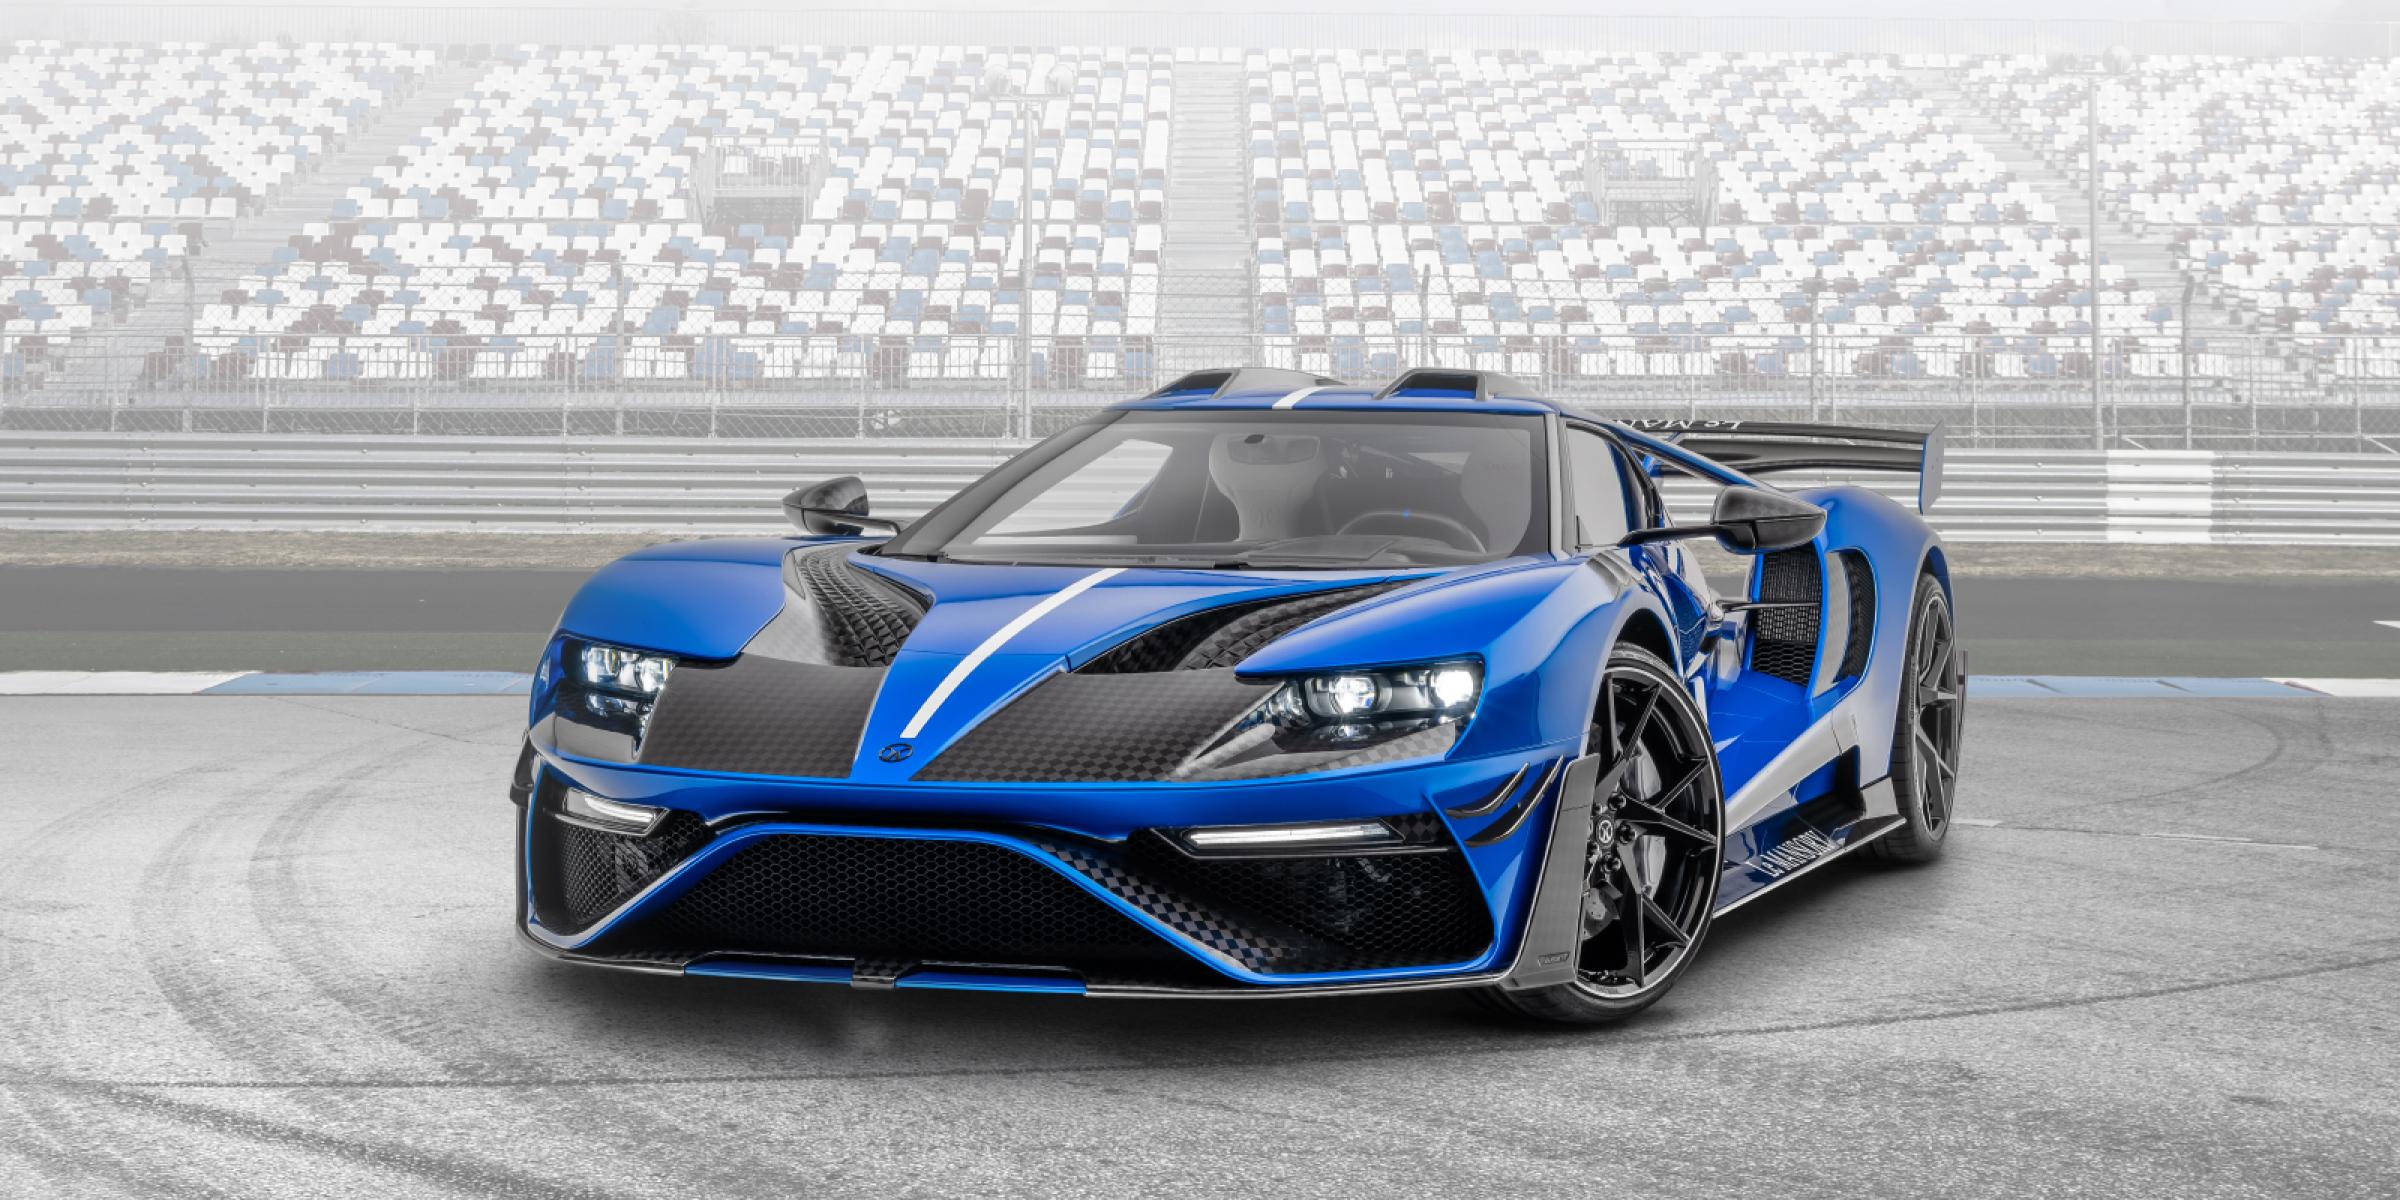 Ford-GT-by-Mansory-Le-Mansory-1